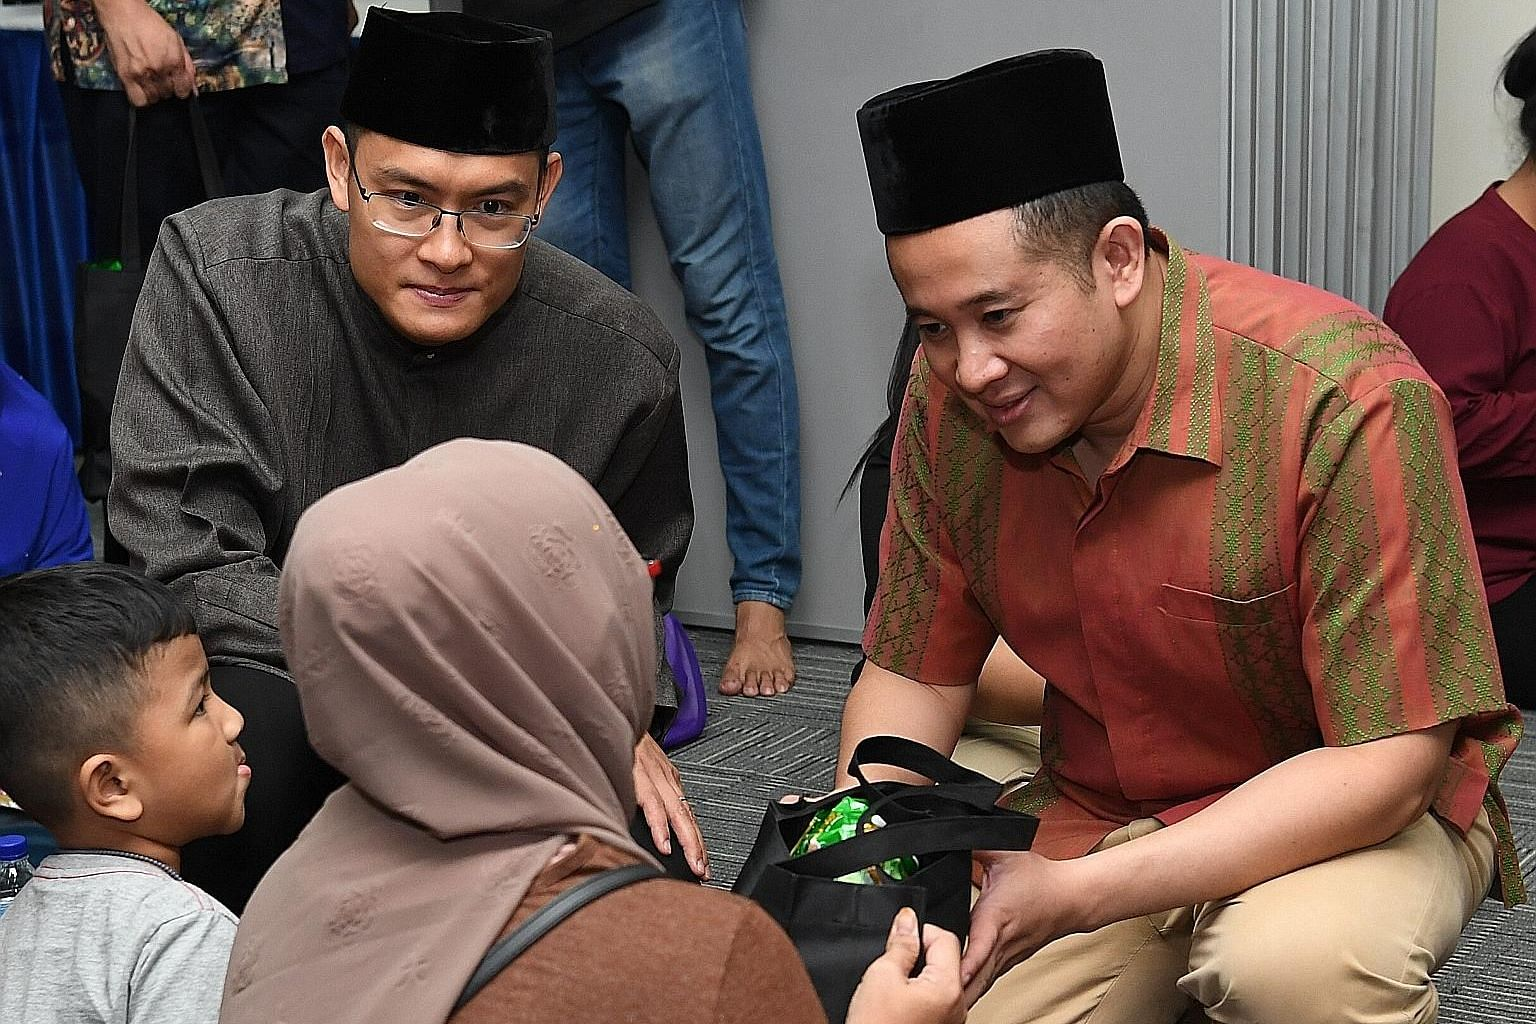 Senior Parliamentary Secretary Amrin Amin (right) and Muis chief executive Esa Masood at the fast-breaking event at En-Naeem Mosque.